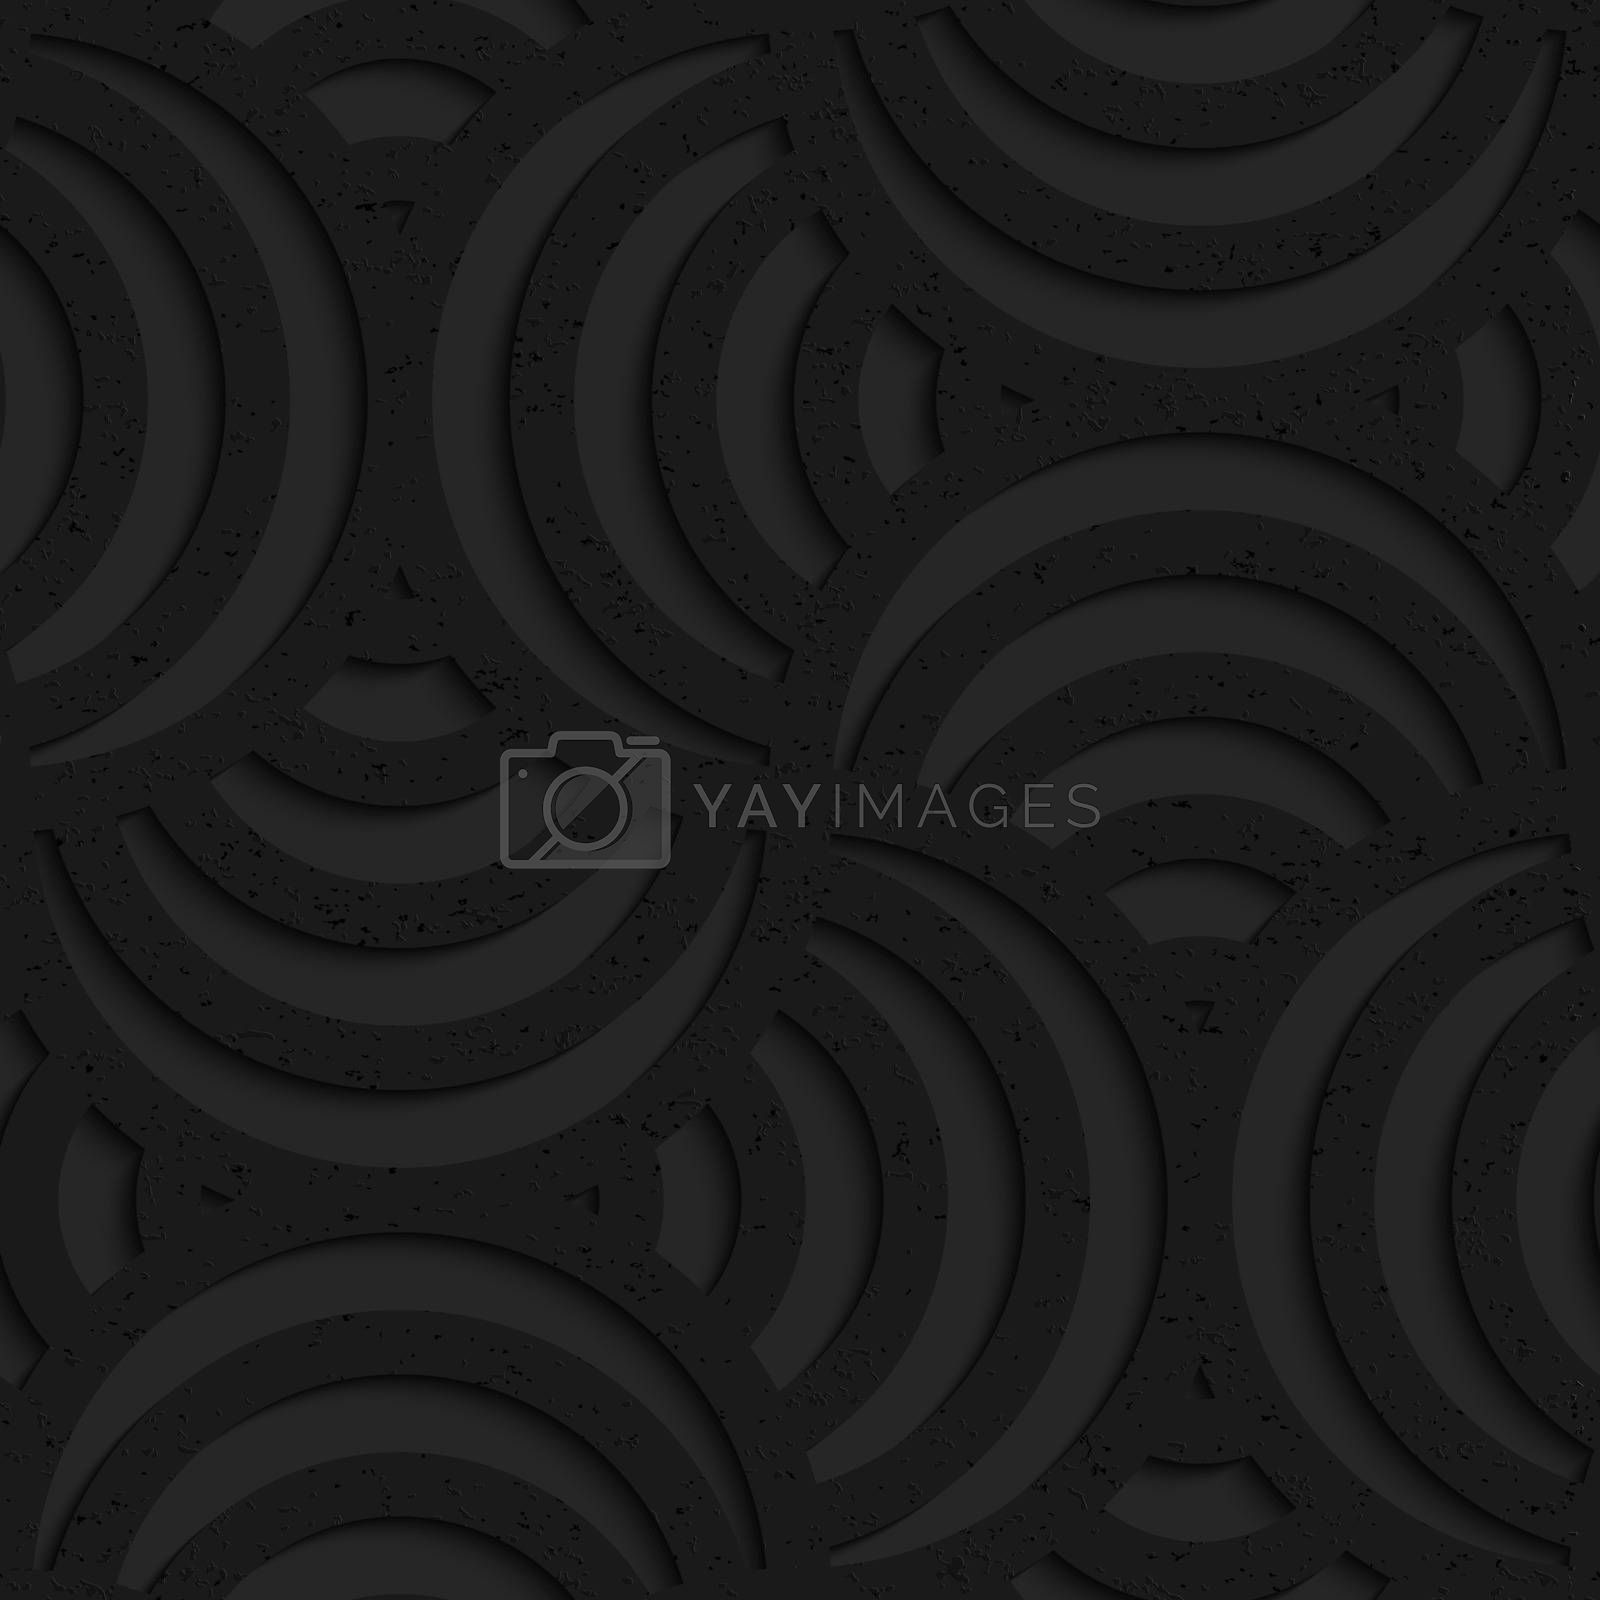 Seamless geometric background. Pattern with 3D texture and realistic shadow.Textured black plastic striped pin will.